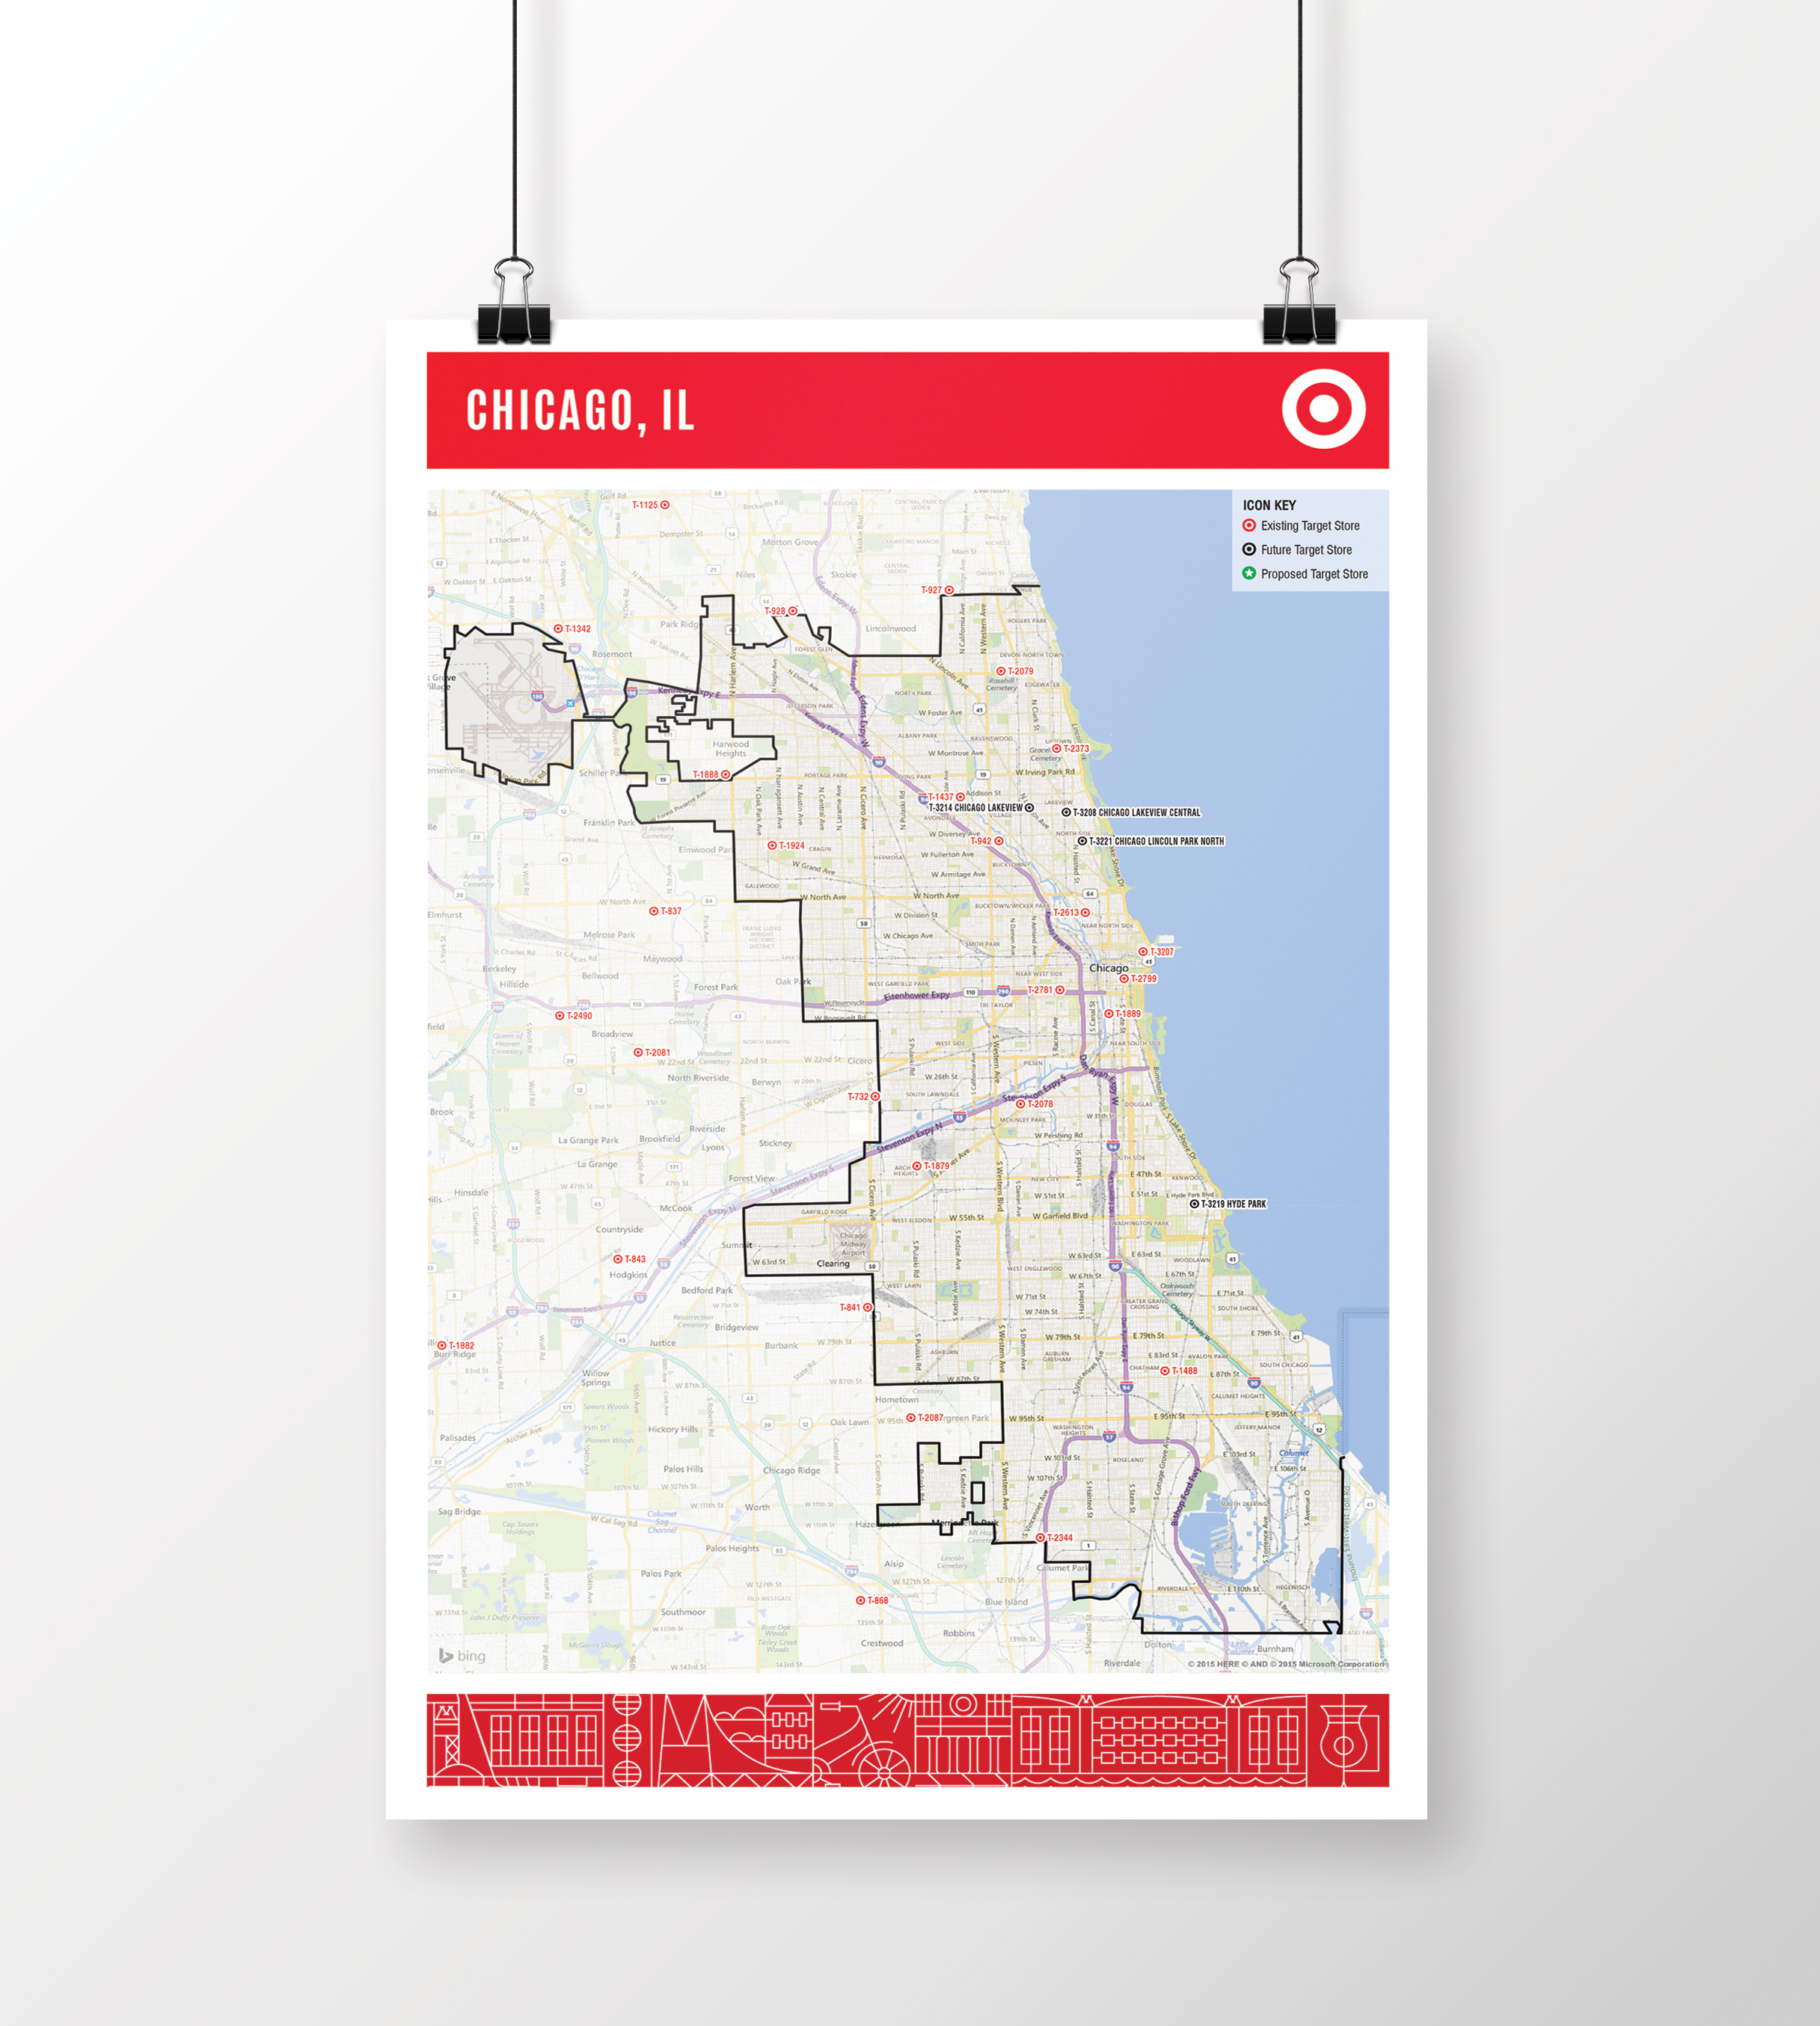 Free Poster Mockup Psd_Target-map-chicago.jpg